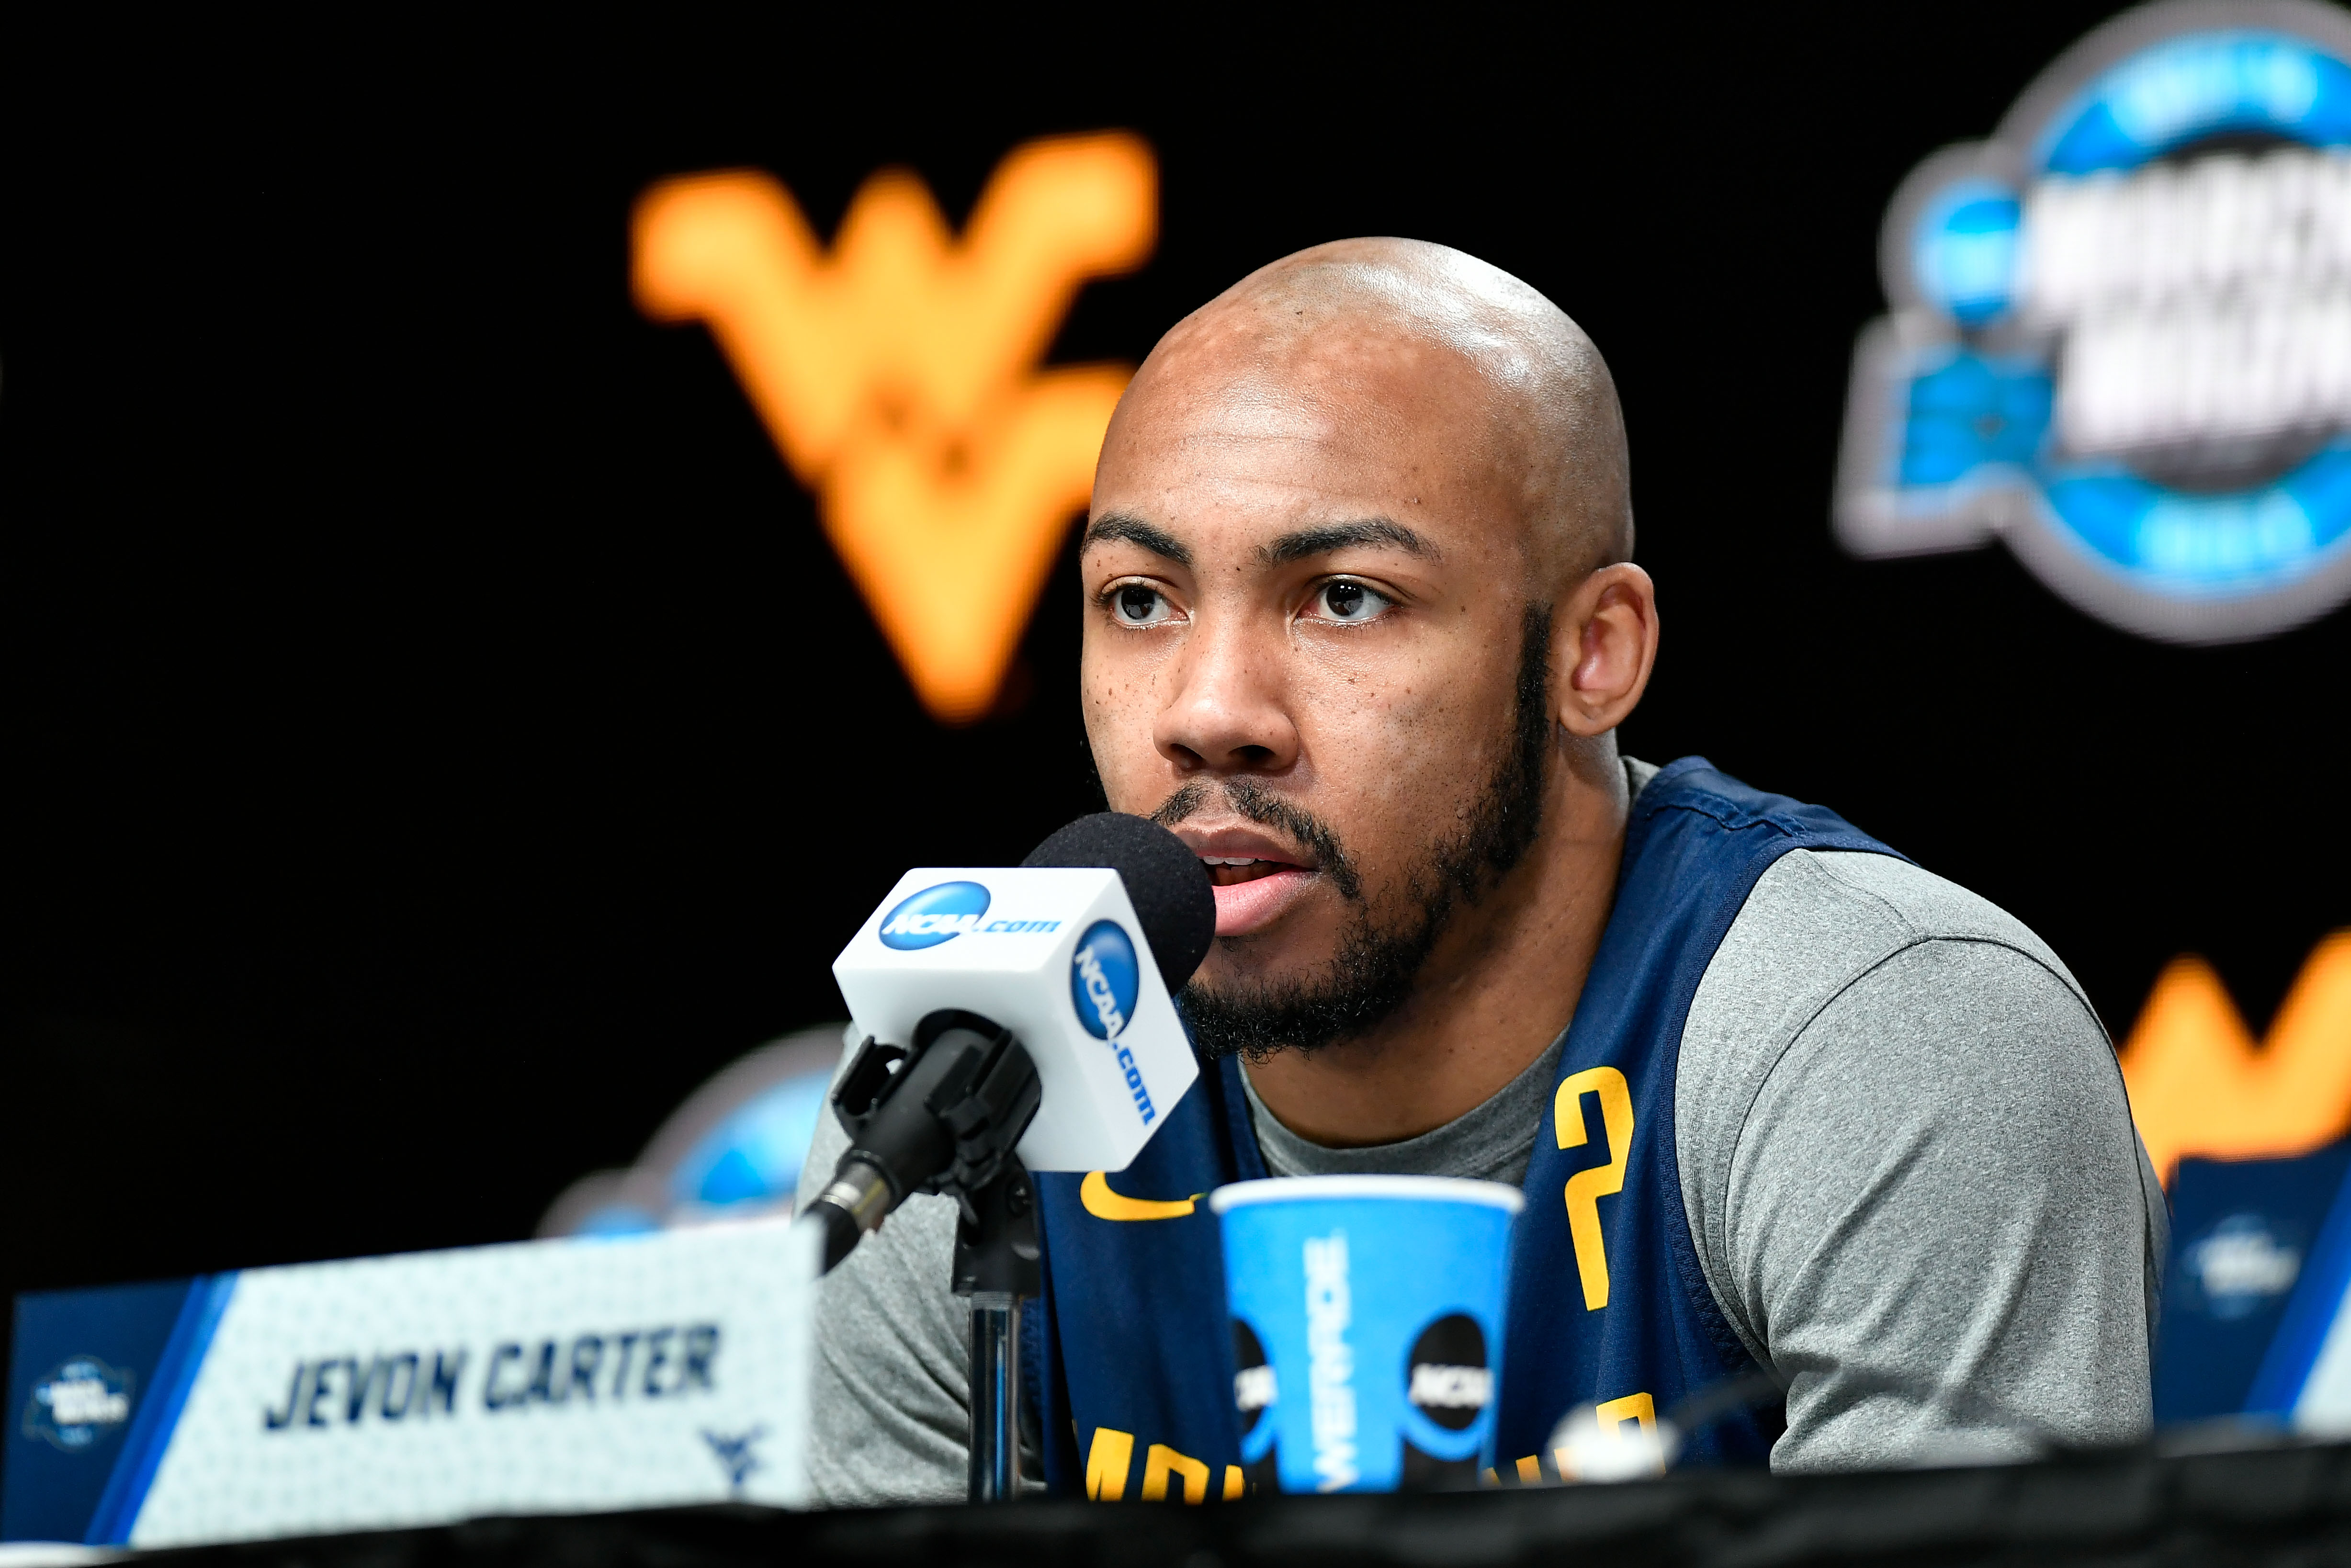 West Virginia Basketball Announces It's Mt. Rushmore